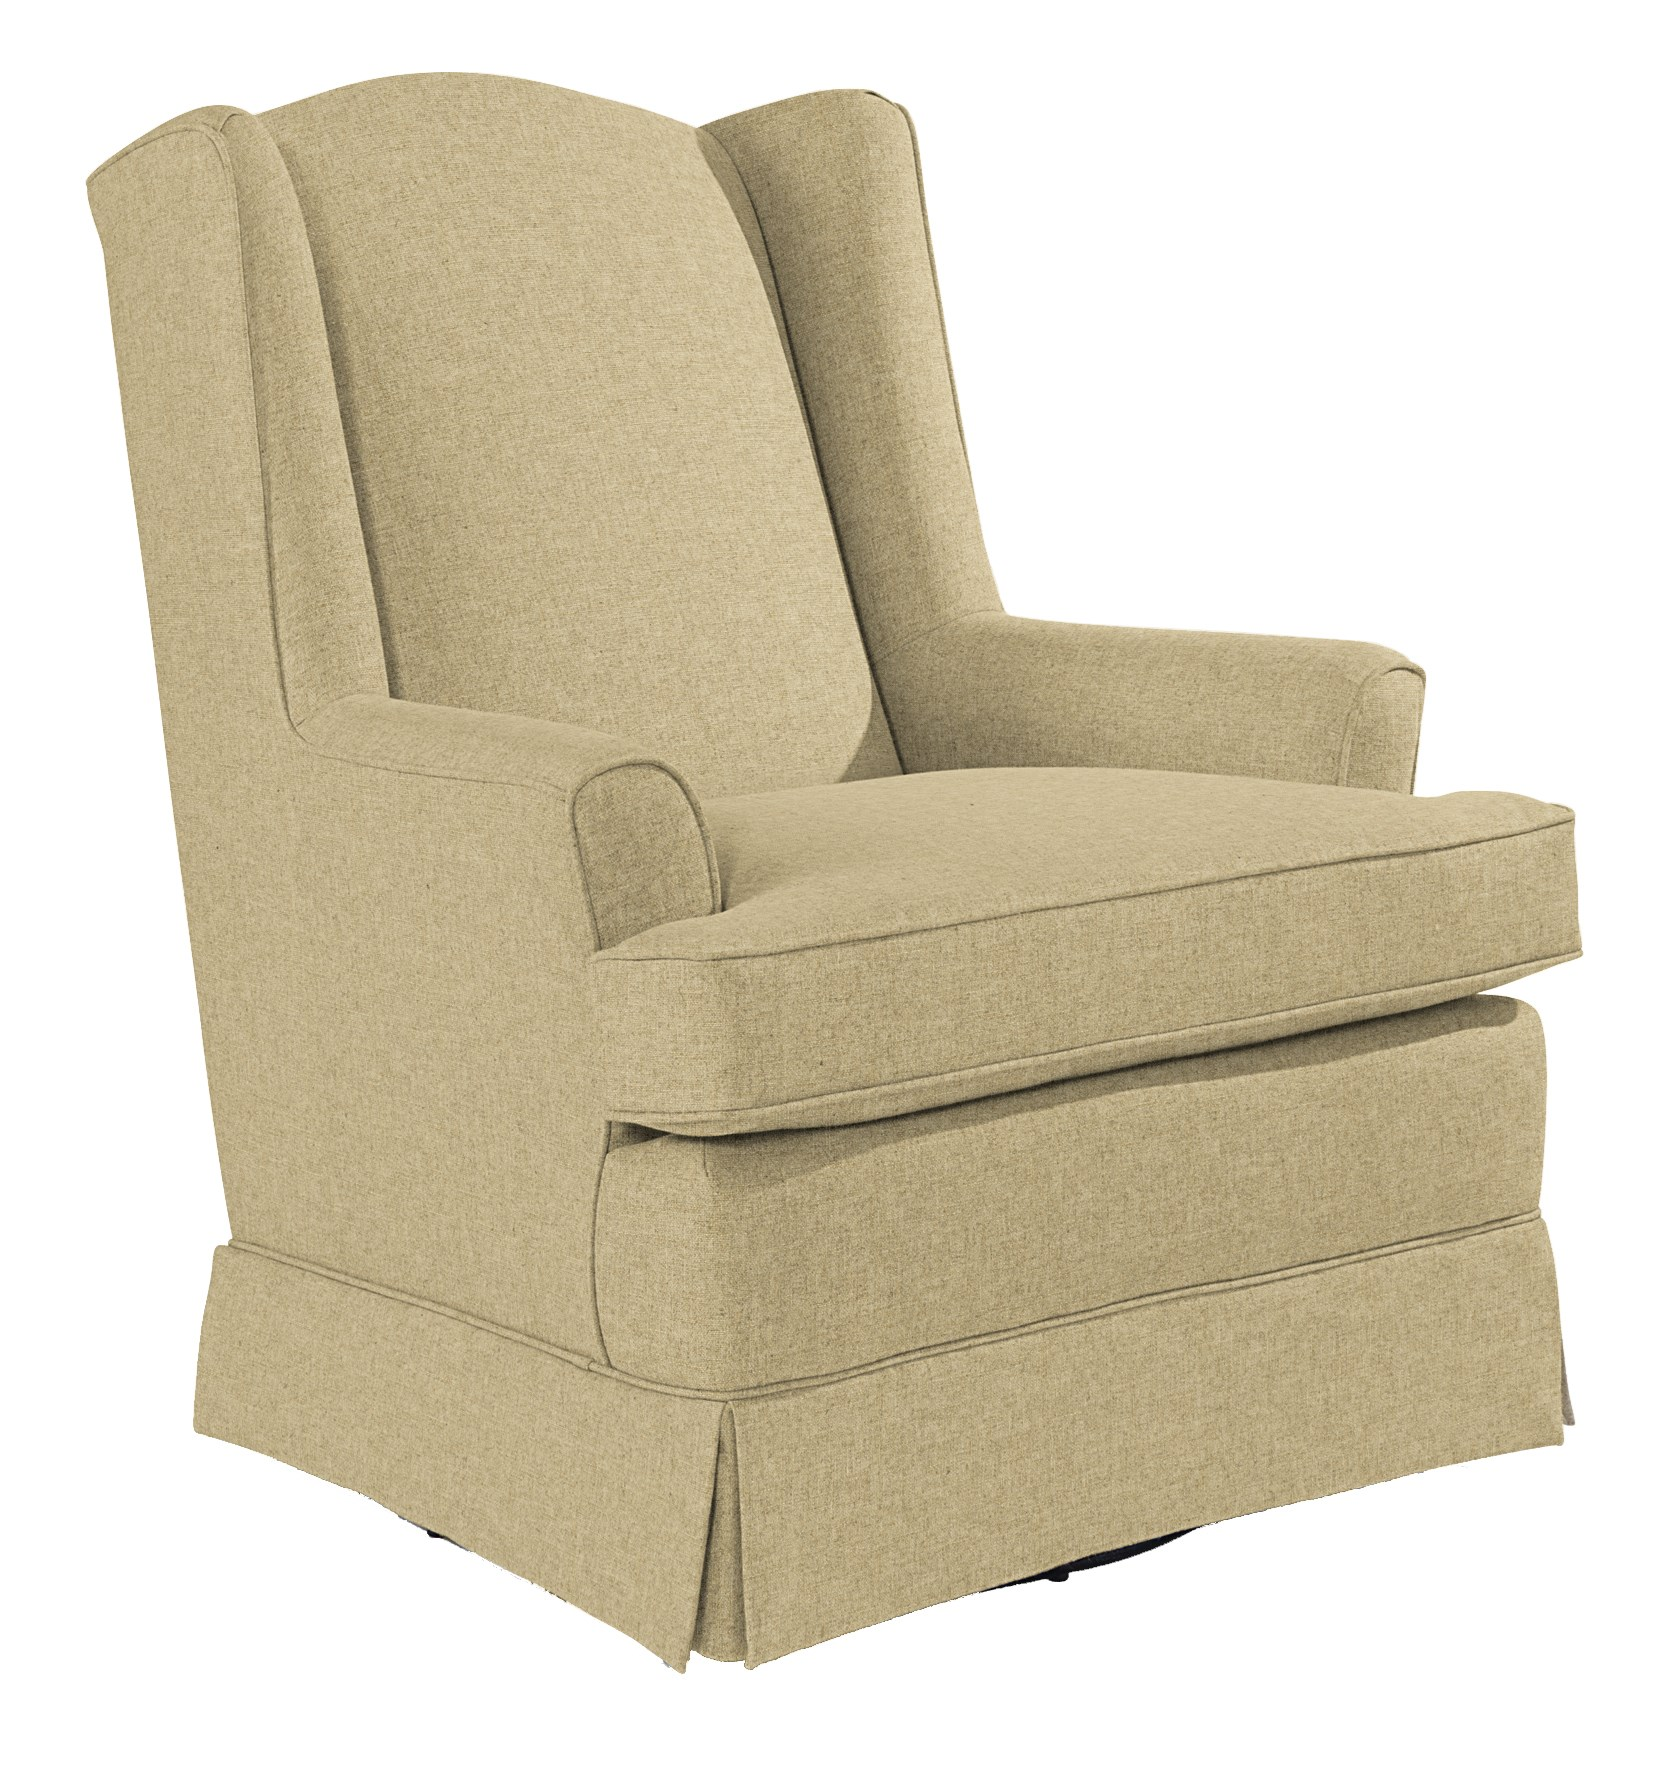 Swivel Glide Chairs Natasha Swivel Glider by Best Home Furnishings at Michael Alan Furniture & Design